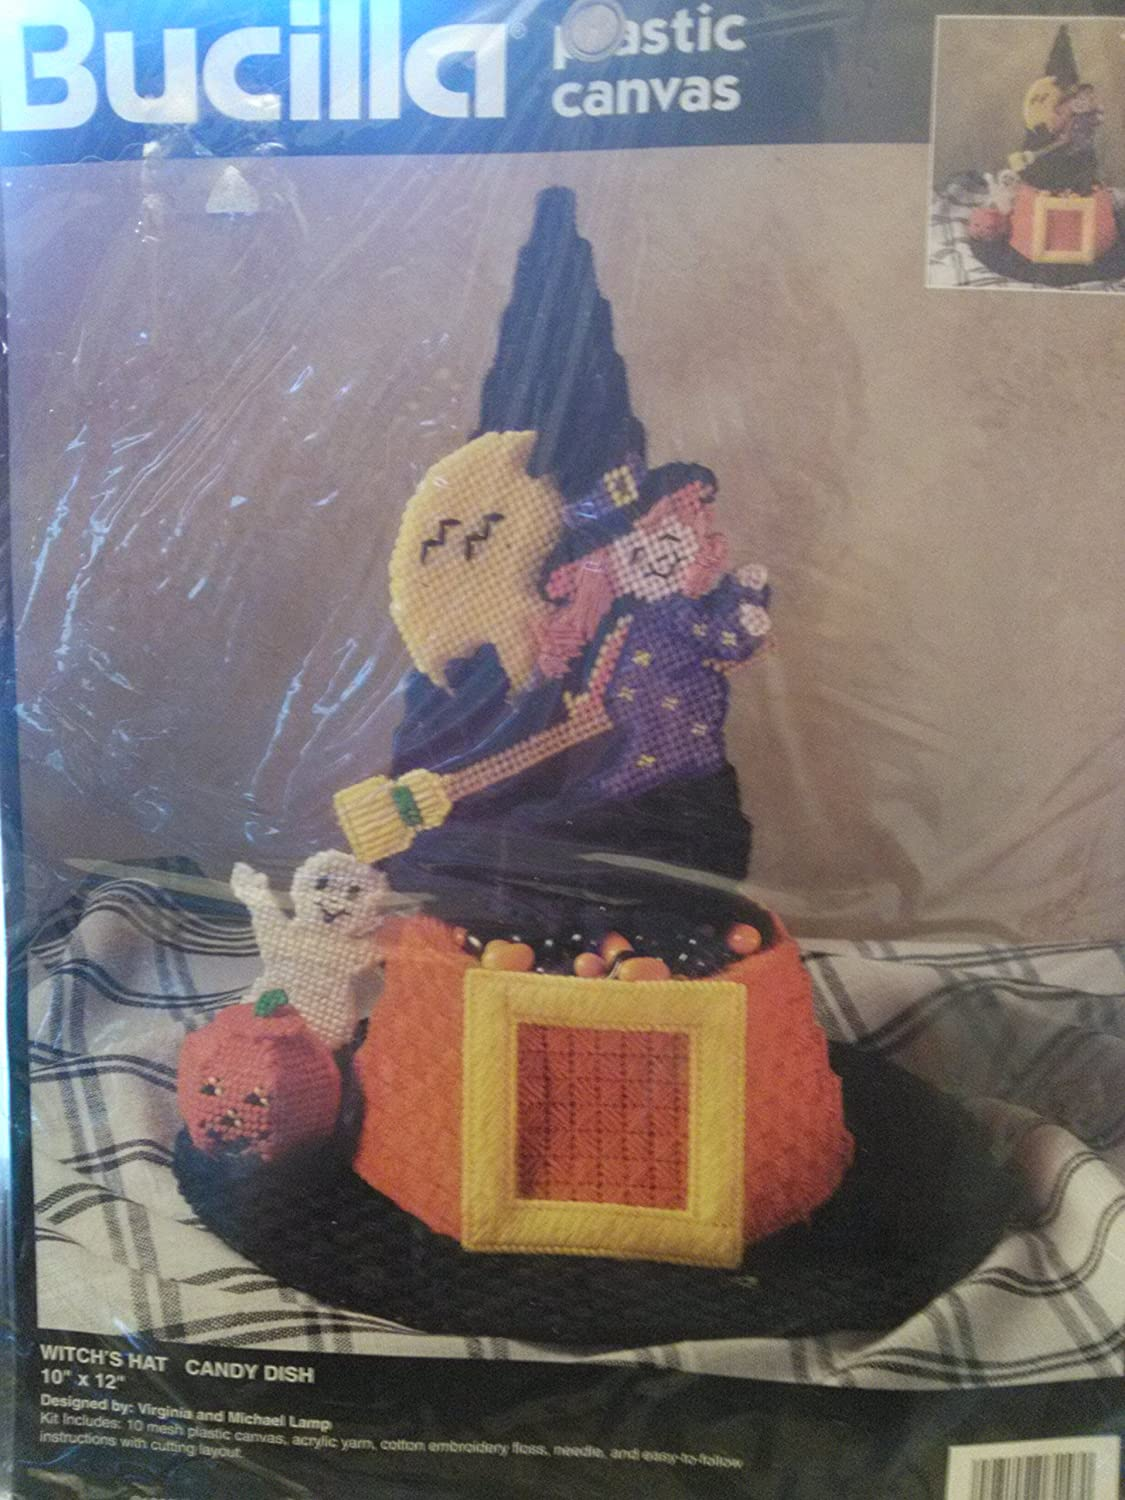 Bucilla Witch's Hat Candy Dish Plastic Canvas 6158